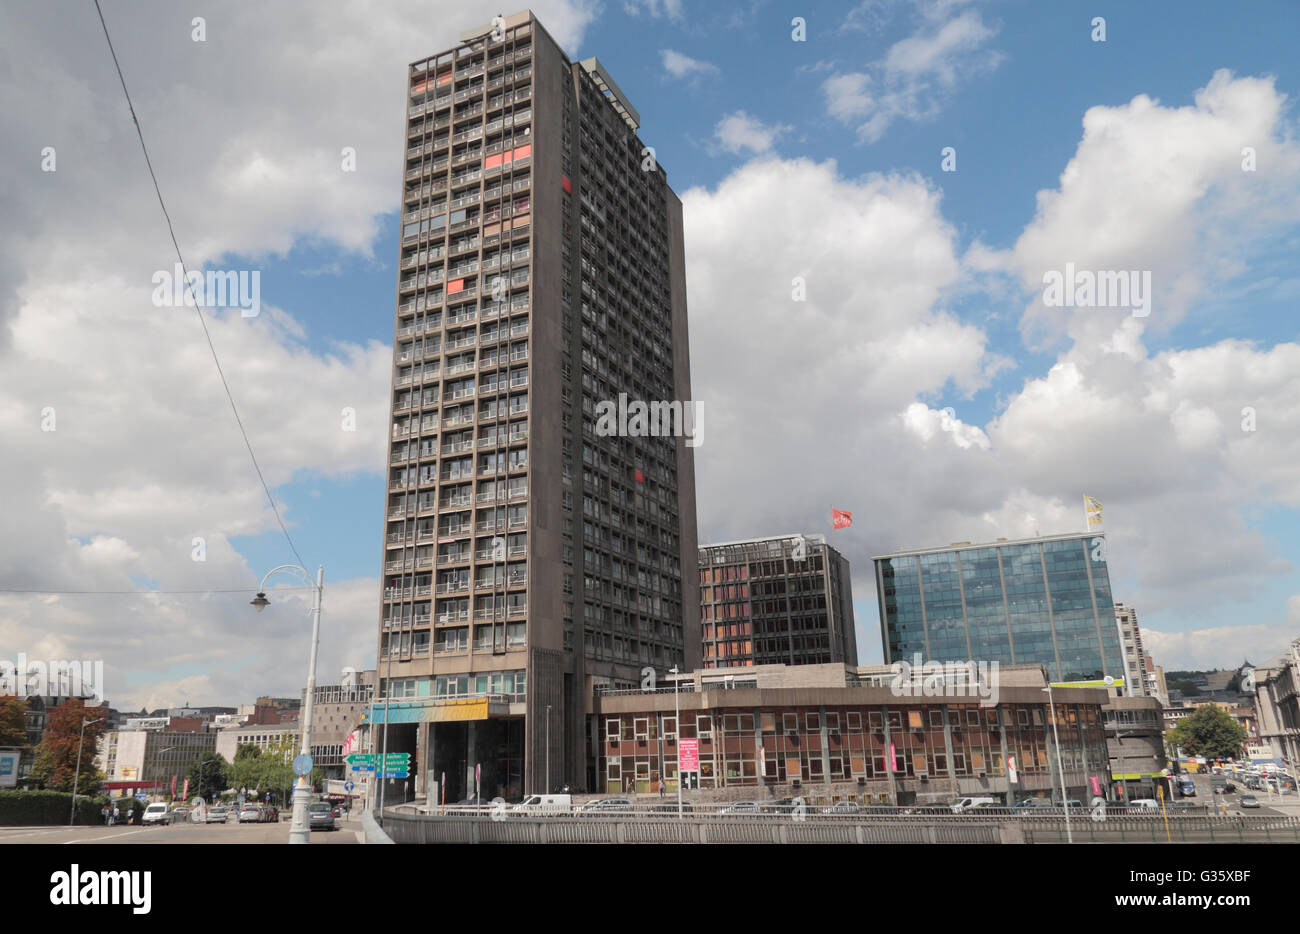 The Residence Kennedy residential tower block, completed in 1970, Liege, Belgium. - Stock Image